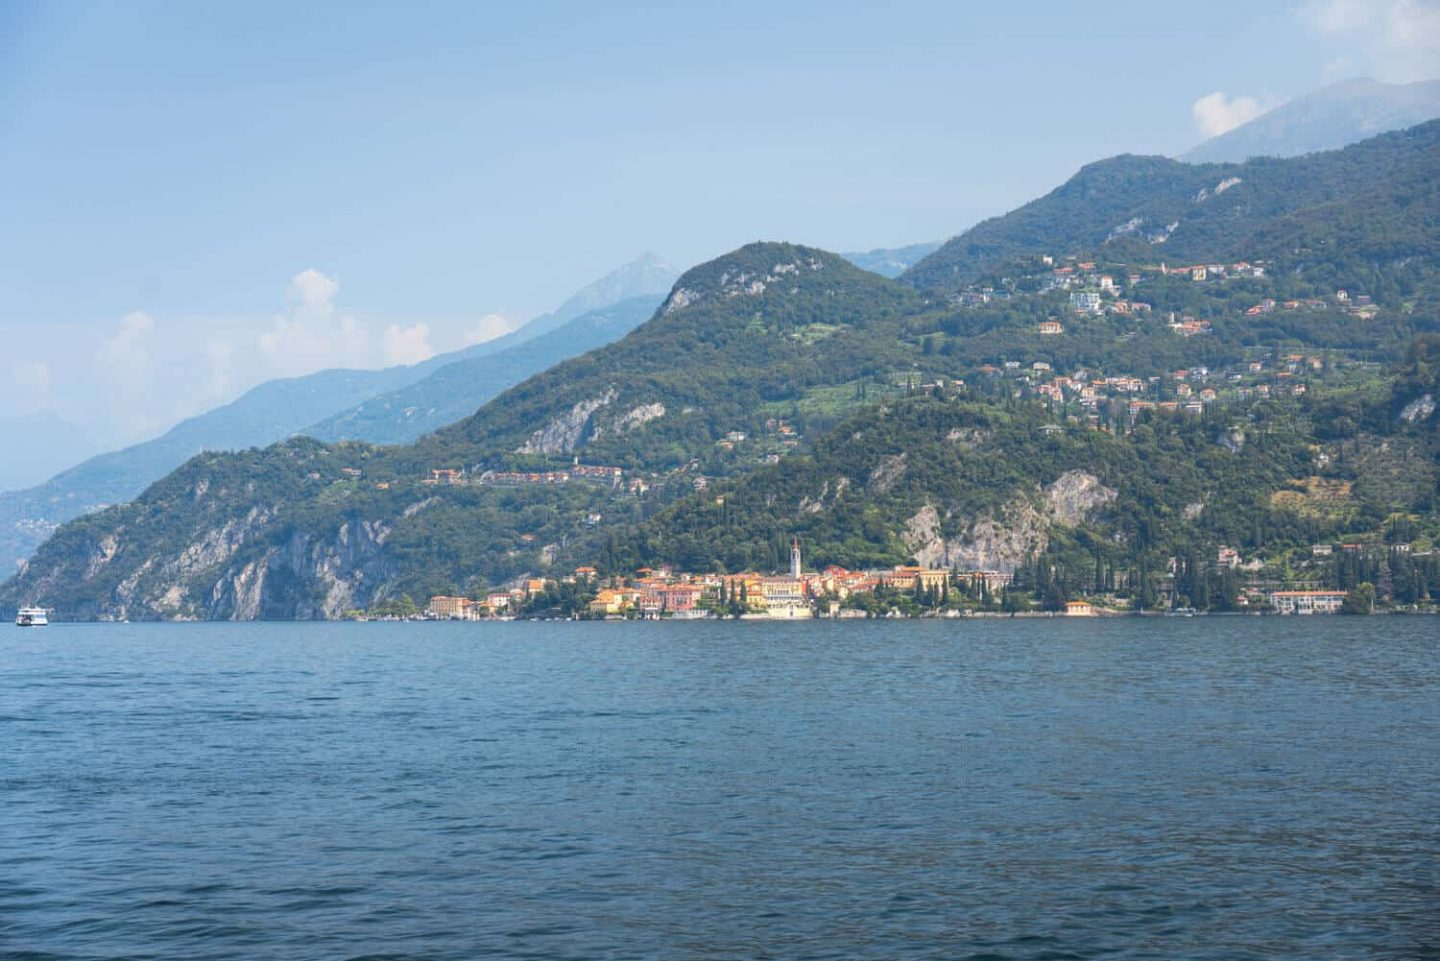 View of Varenna from Punta Spartivento Bellagio. Lake Como day trip from Milan.